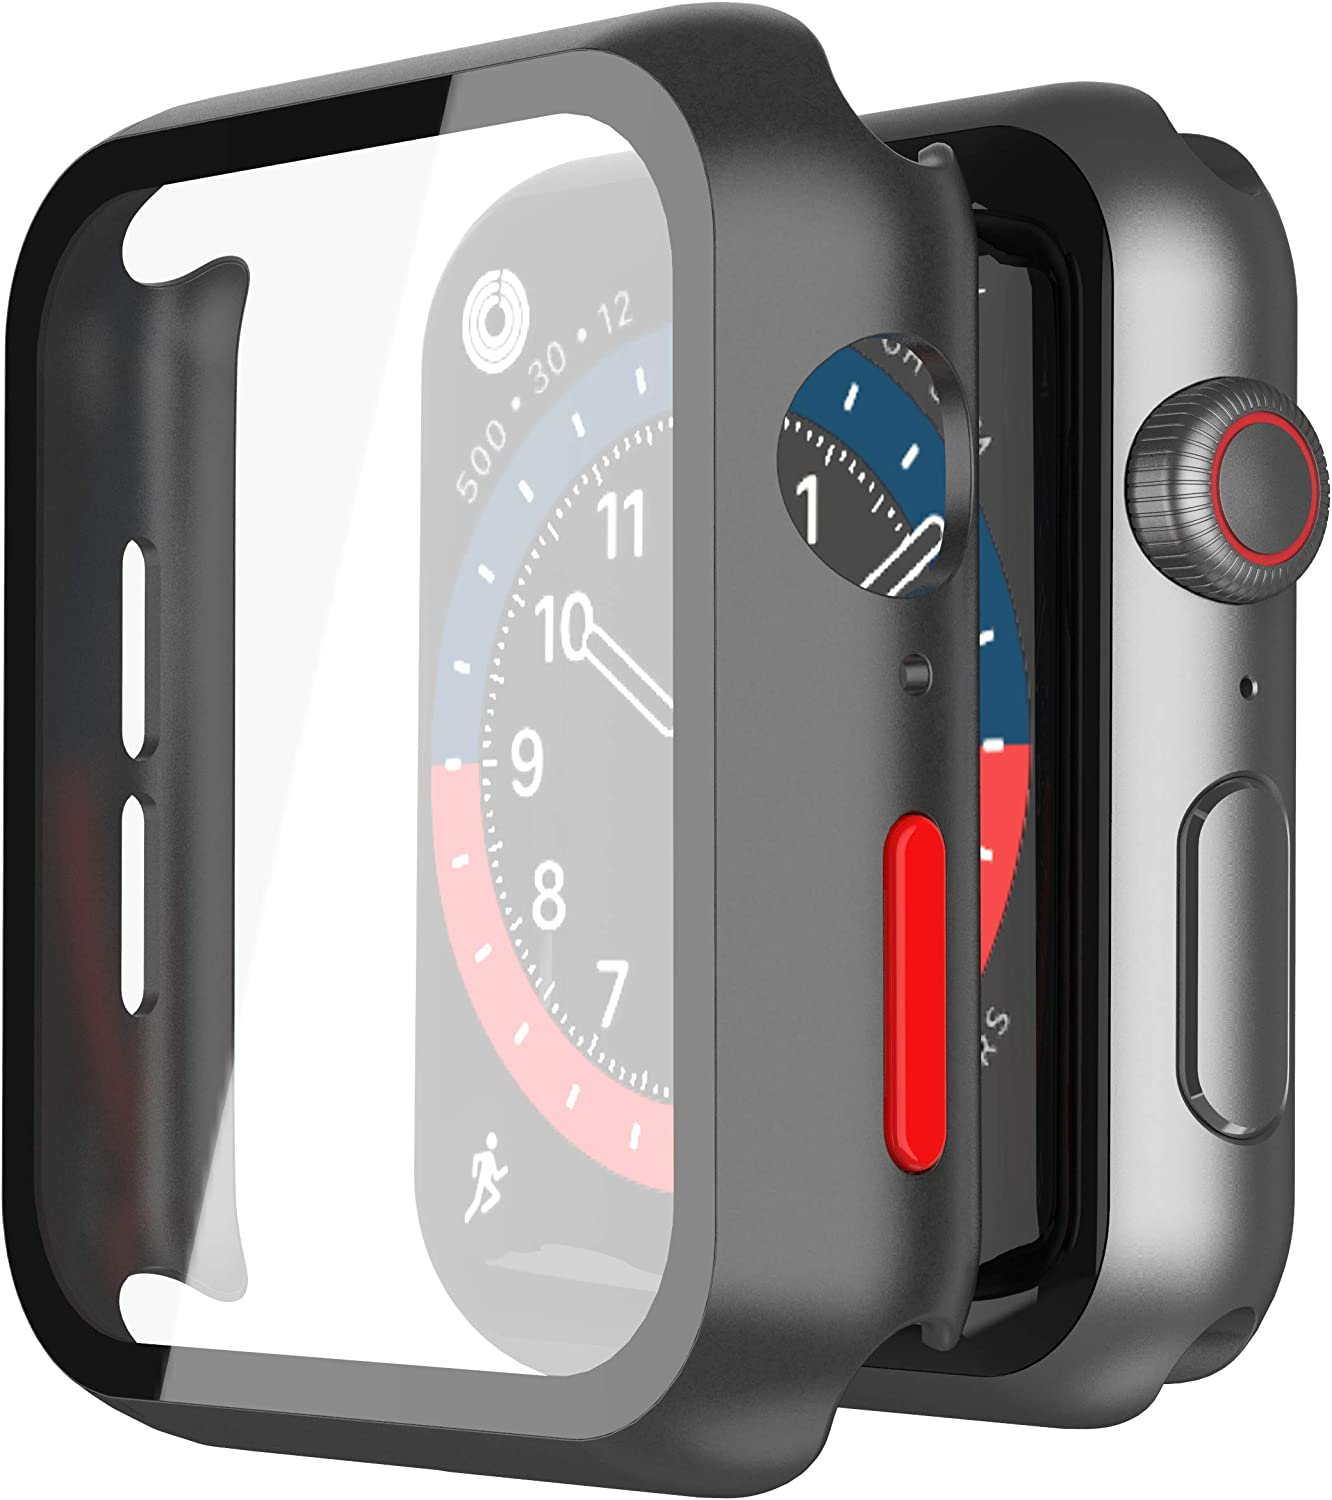 Misxi 2-Pack Hard PC Case with Tempered Glass Screen Protector Compatible with Apple Watch Series 6 SE Series 5 Series 4 44mm - (Black with Red Button)